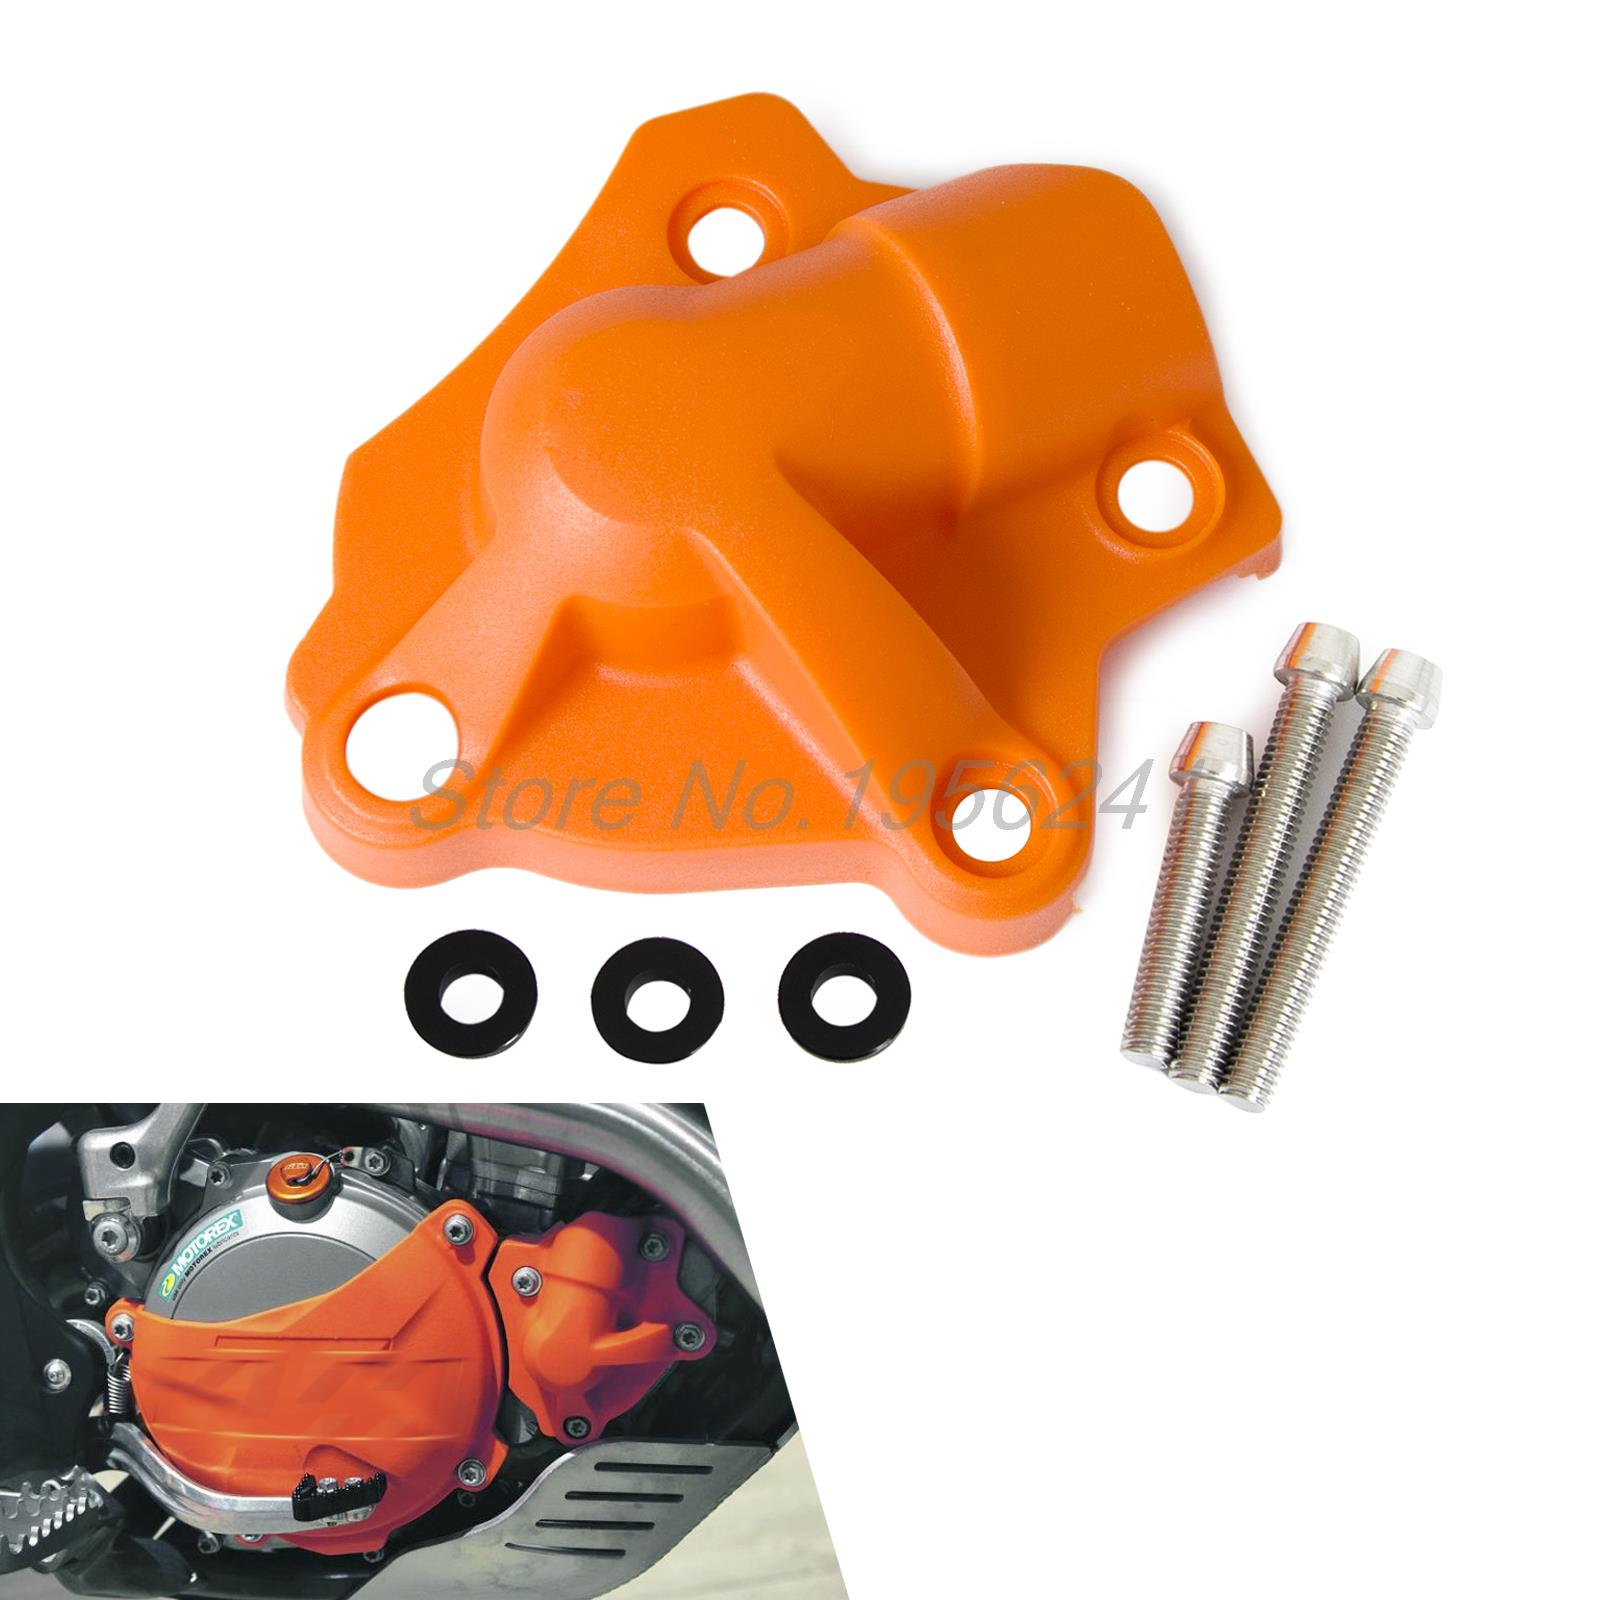 Water Pump Cover Protector Fits for KTM  350 XCF-W FREERIDE 350 2013 2014 2015 2016 aluminum water cool flange fits 26 29cc qj zenoah rcmk cy gas engine for rc boat